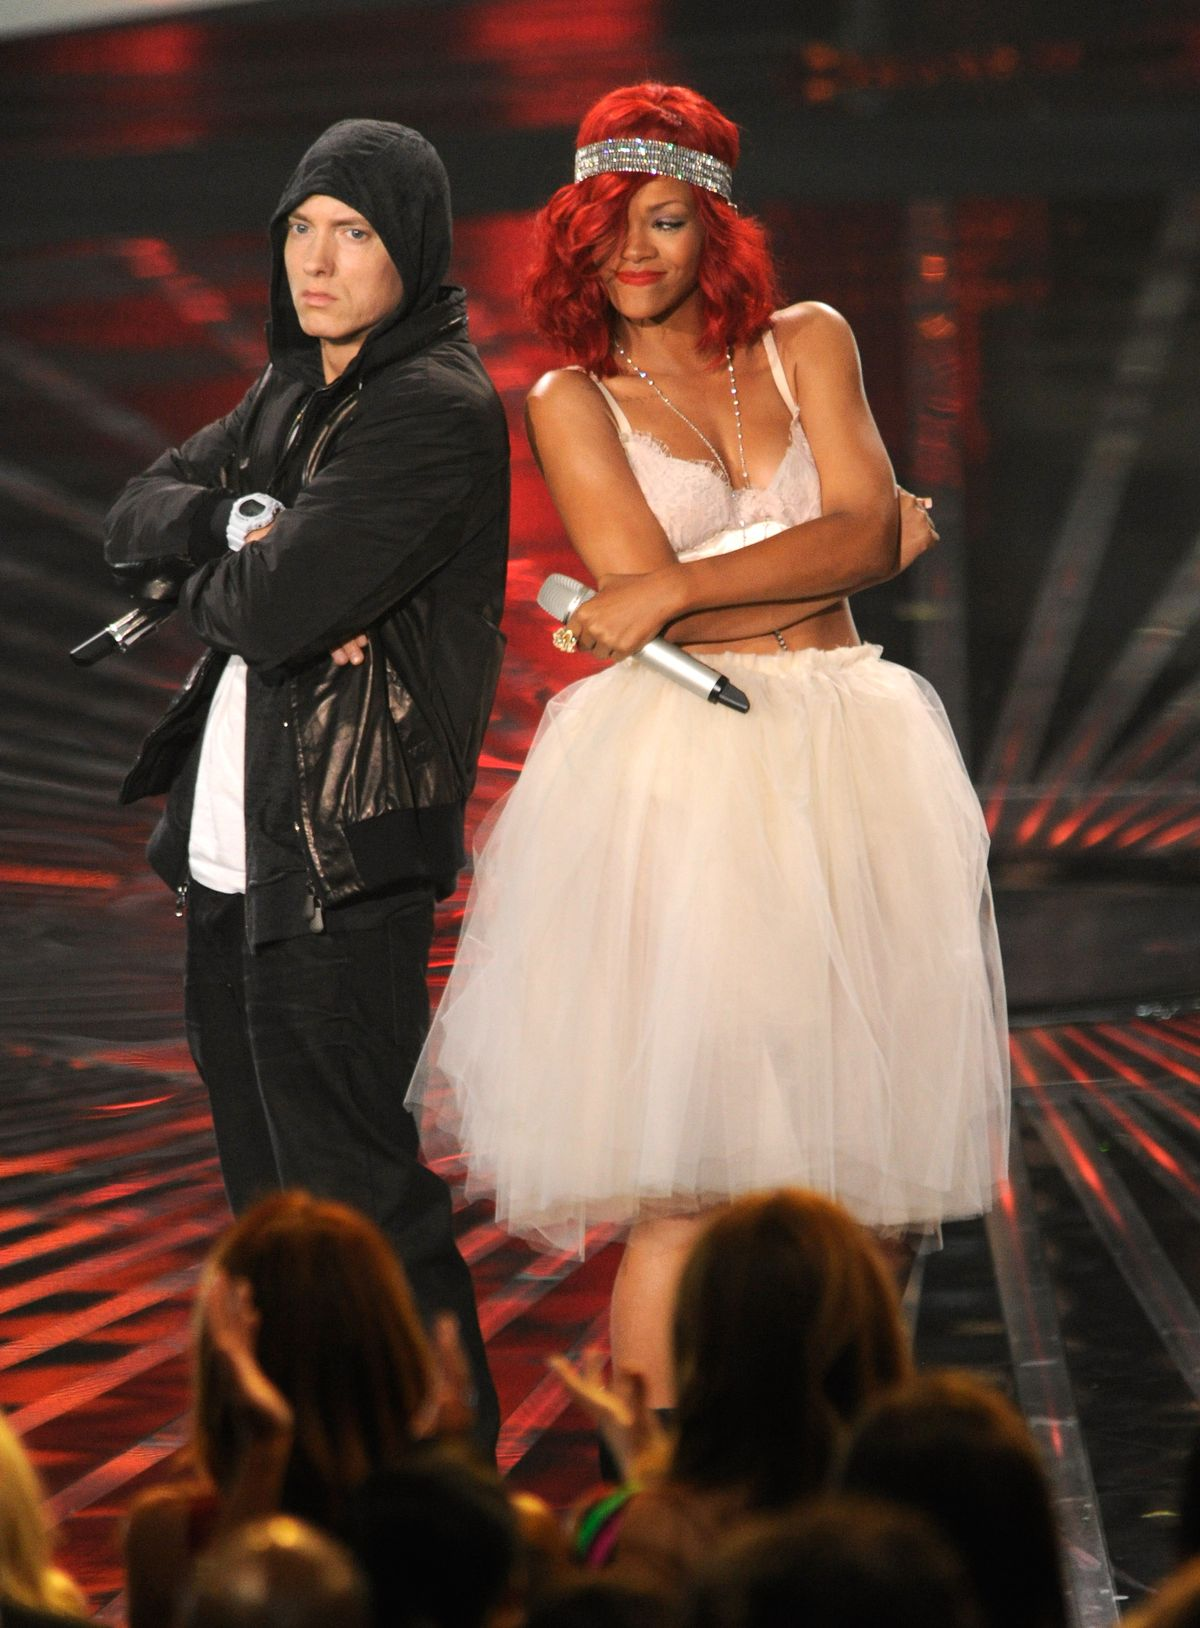 LOS ANGELES, CA - SEPTEMBER 12:  Eminem and Rihanna perform on stage at the 2010 MTV Video Music Awards held at Nokia Theatre L.A. Live on September 12, 2010 in Los Angeles, California.  (Photo by Kevin Mazur/EM/WireImage)